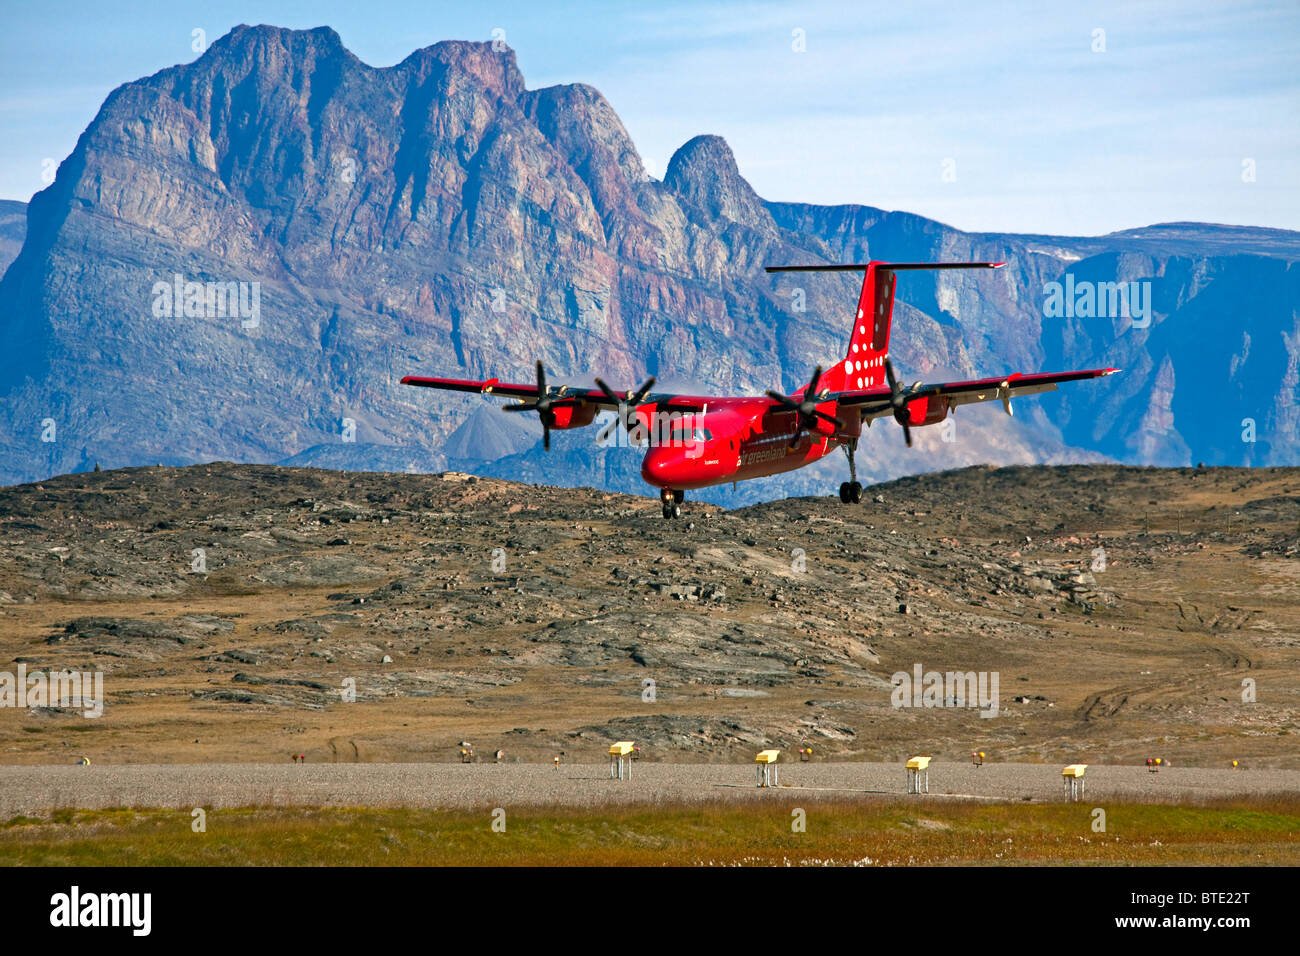 Airplane de Havilland DHC-7 / Dash 7 from Air Greenland landing at the Qaarsut Airport, Greenland - Stock Image